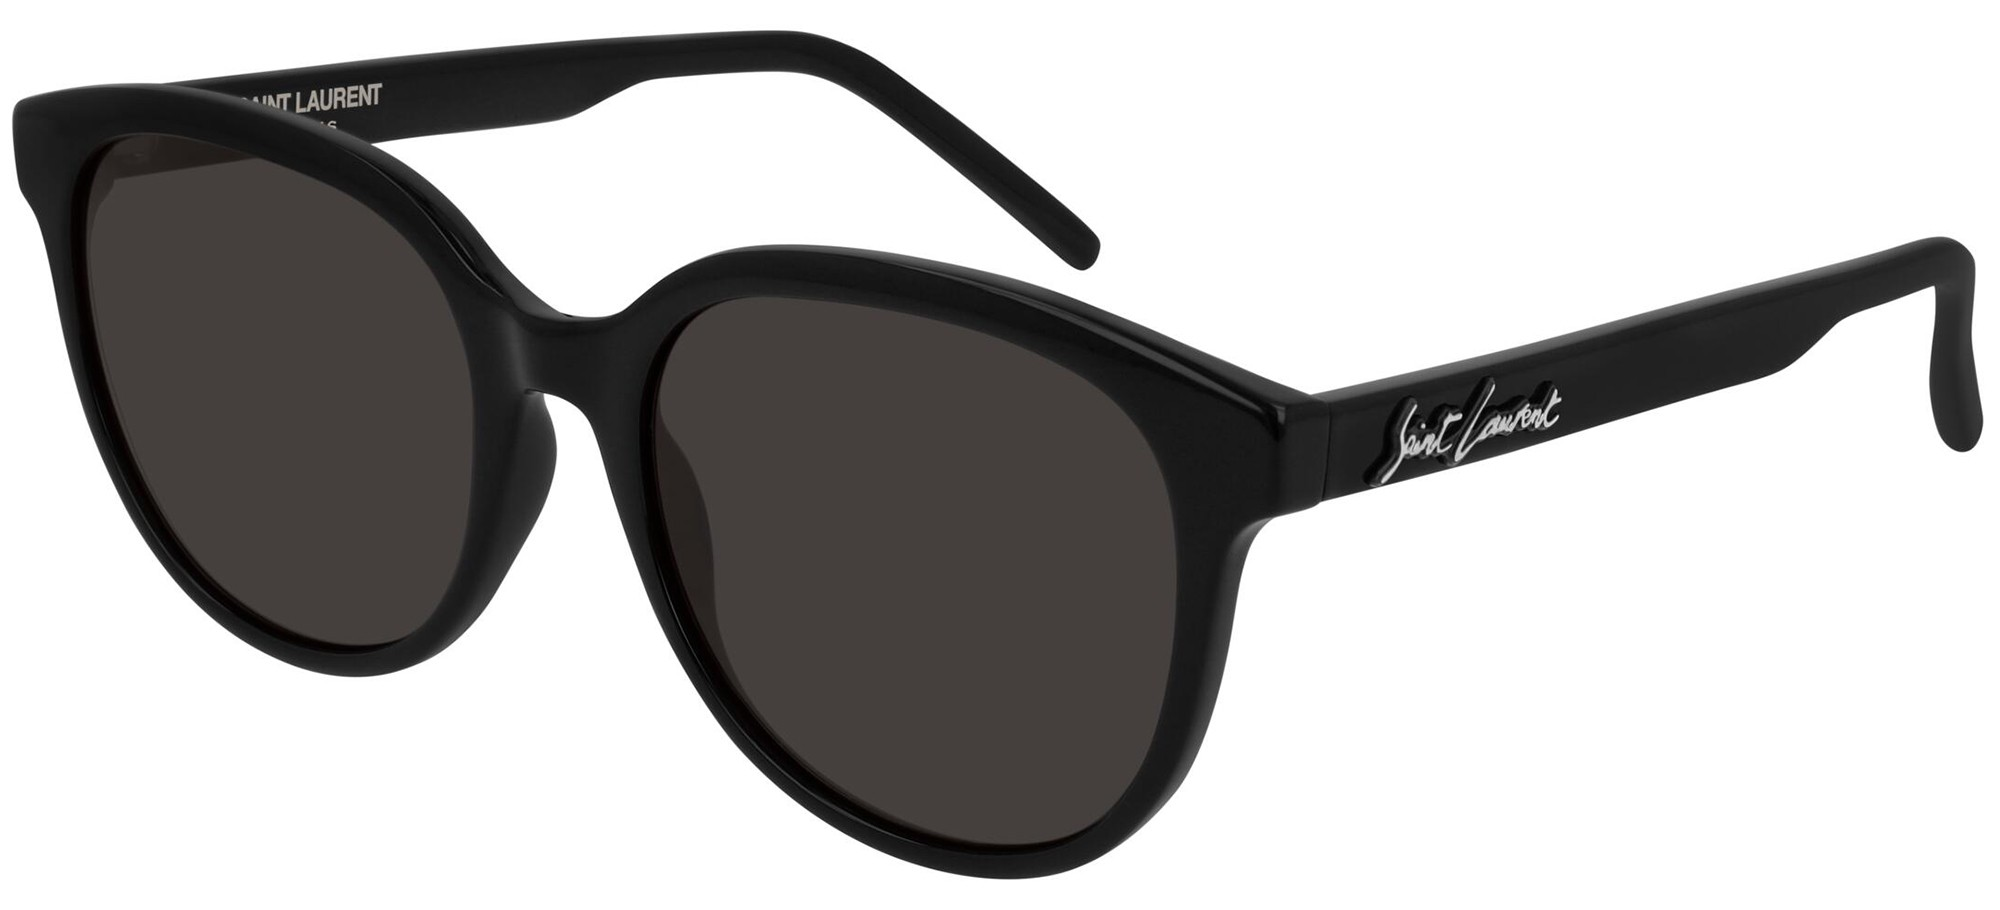 Saint Laurent SL 317